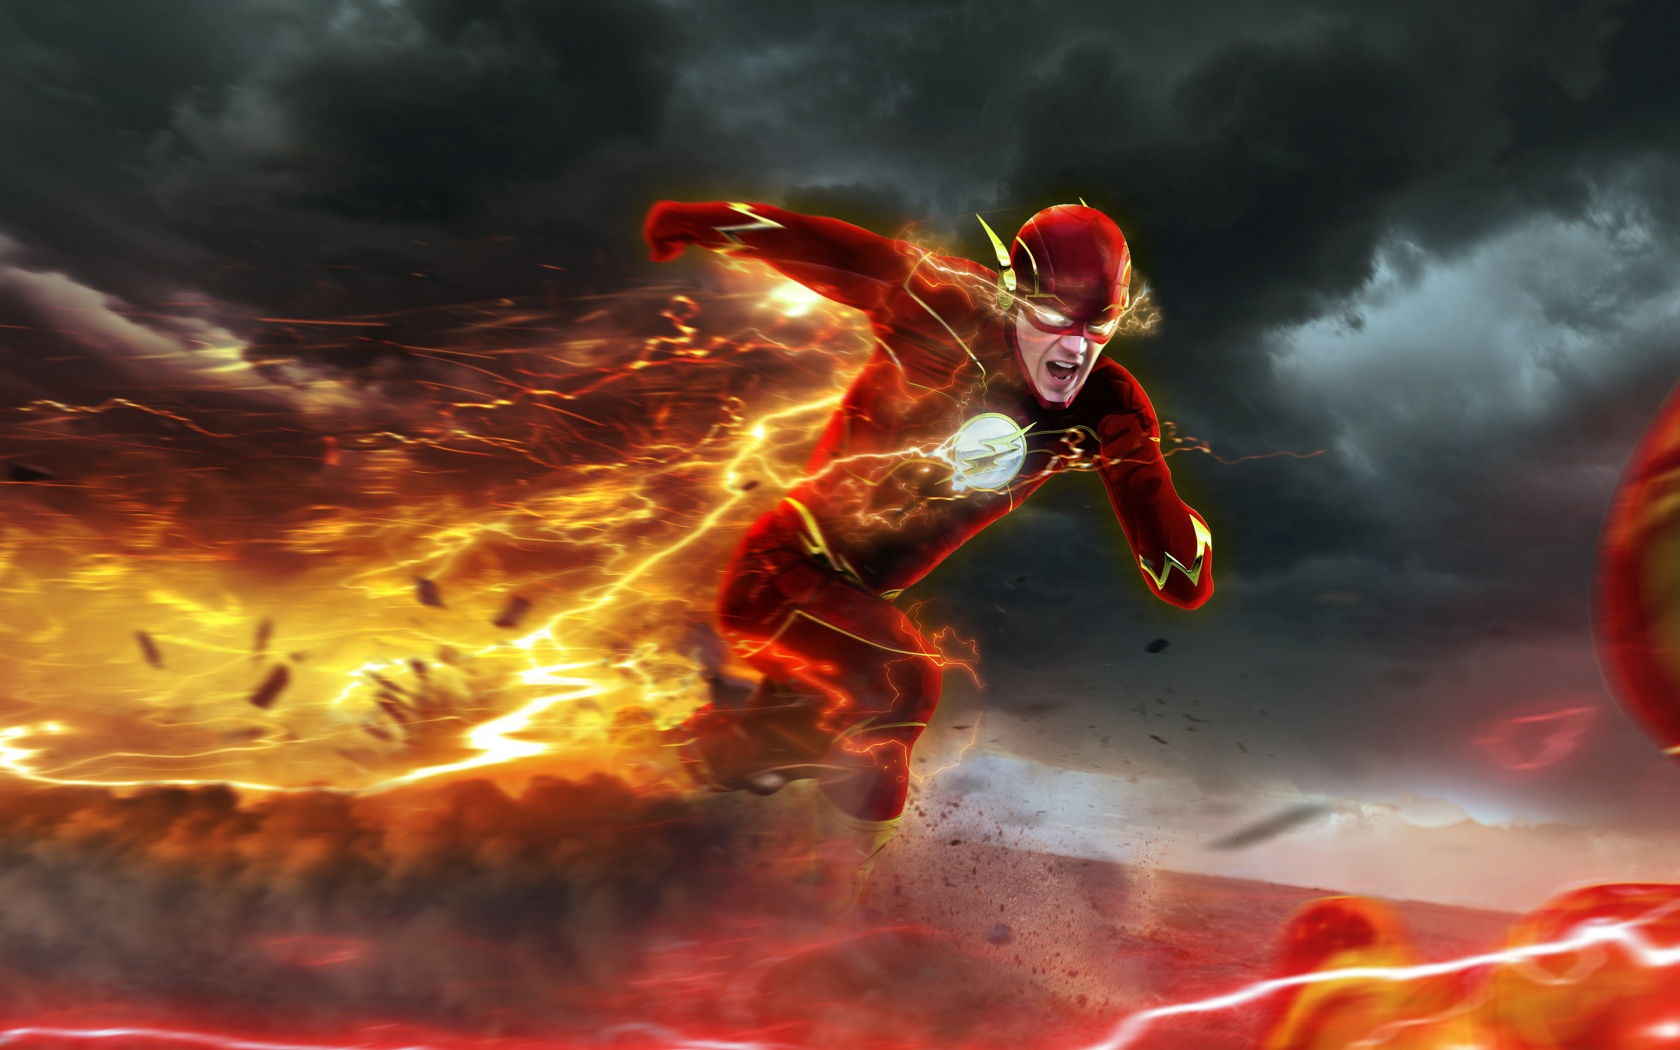 47 the flash 4k wallpaper on wallpapersafari